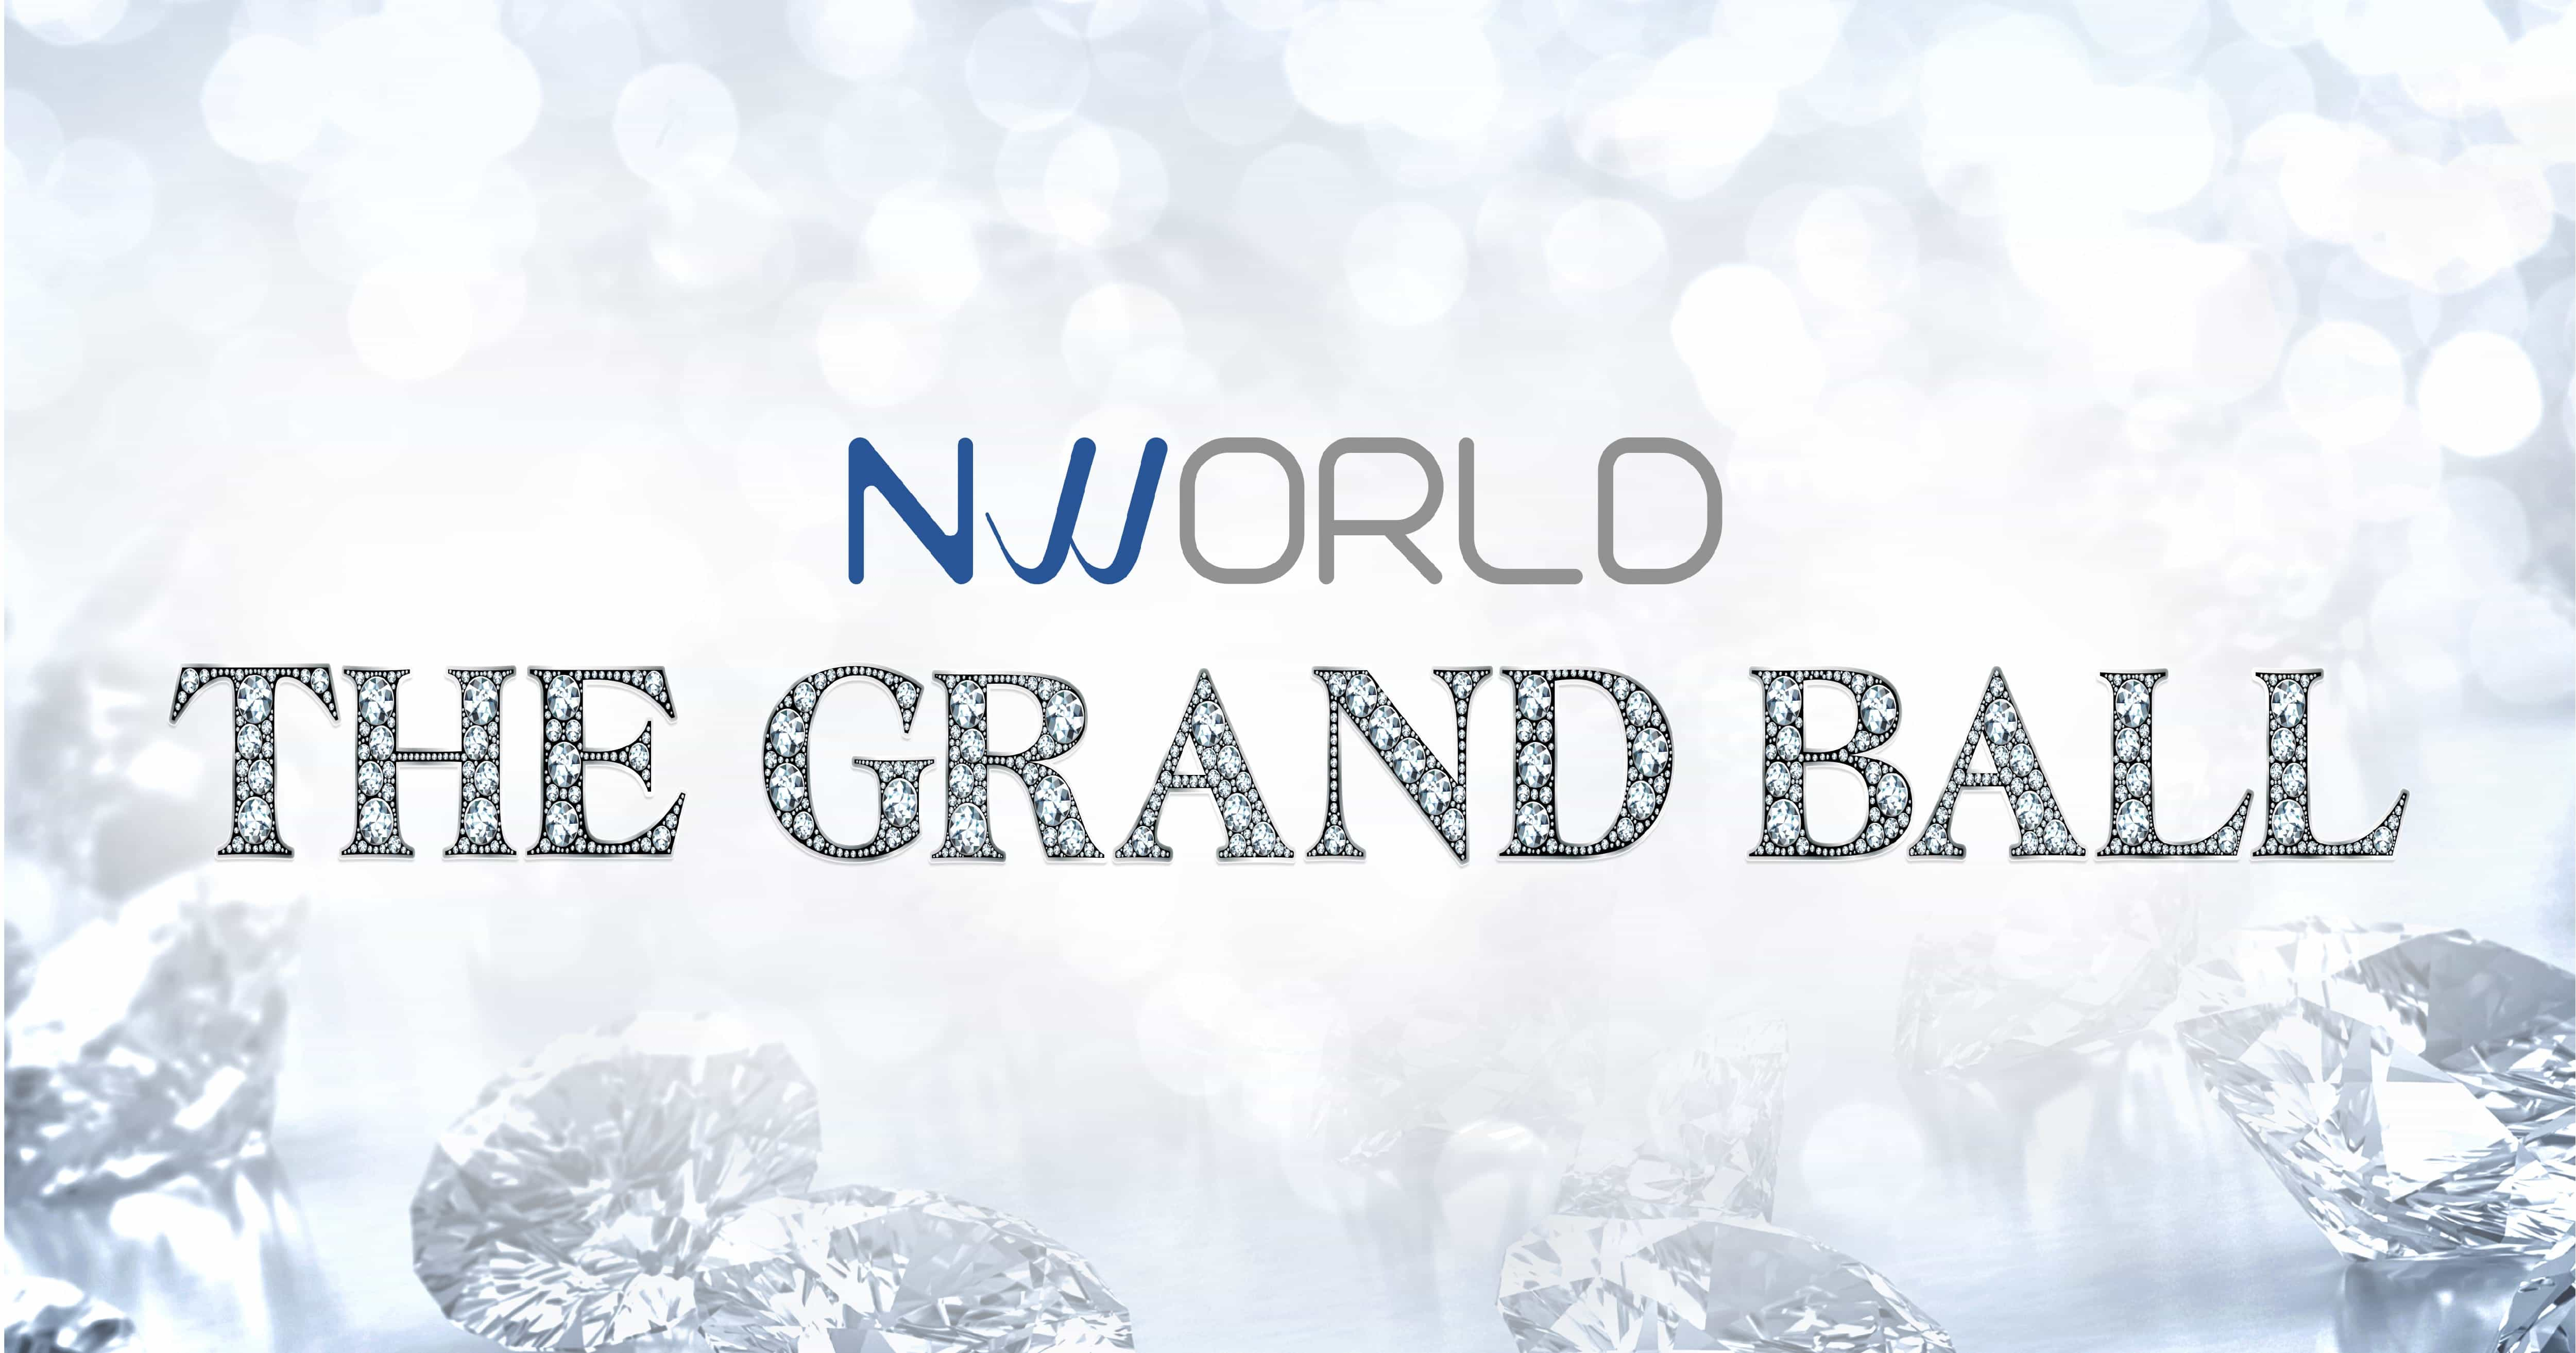 The Grand Ball: A Night with visionaries